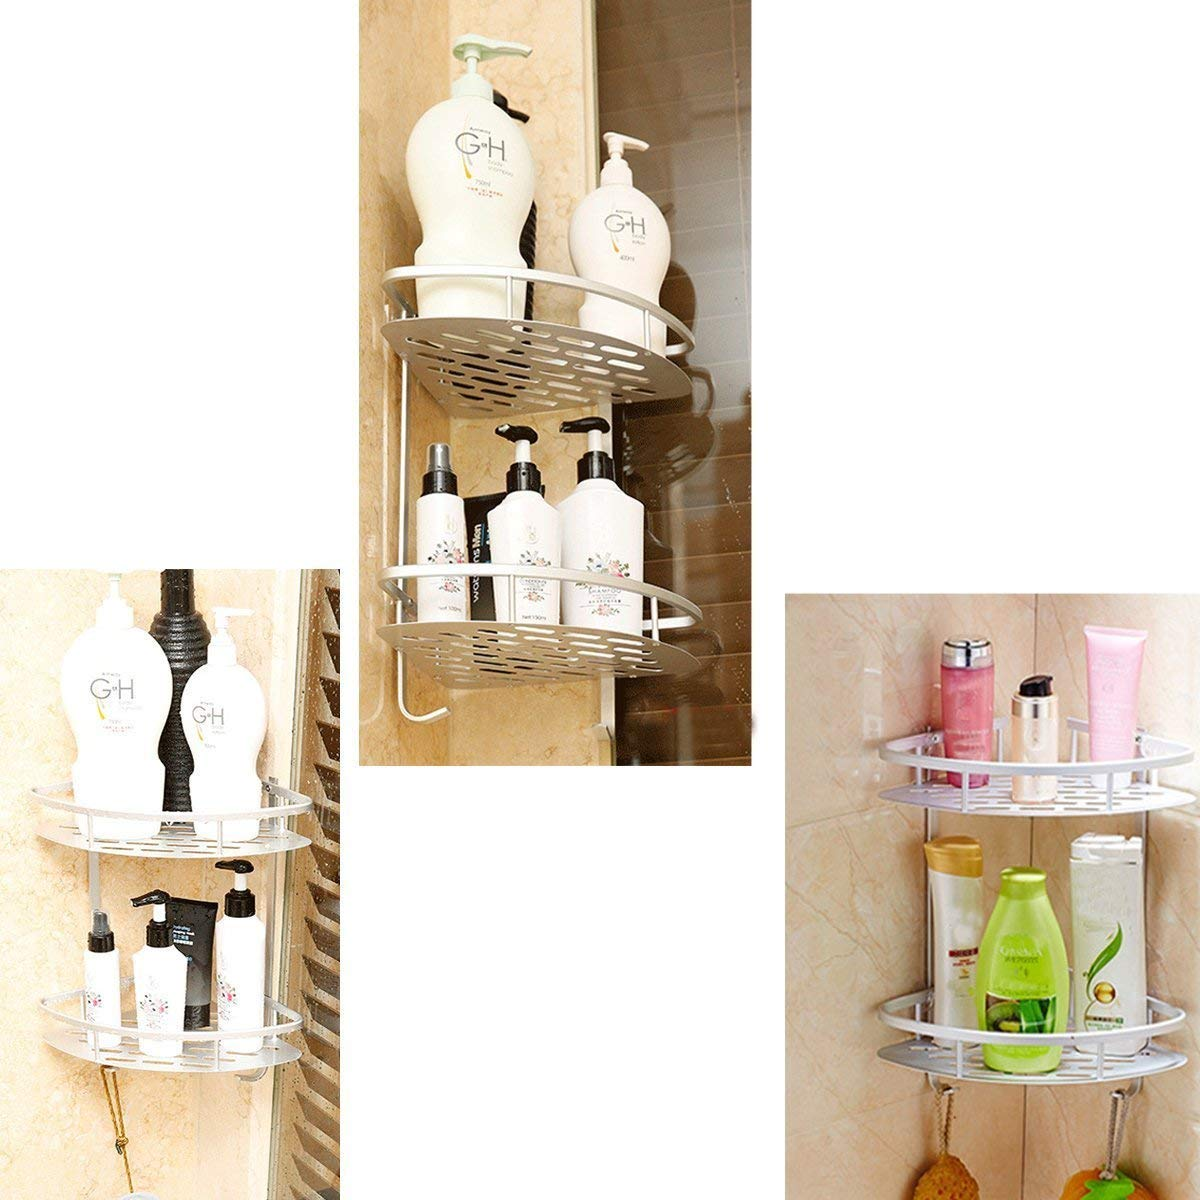 Shower Caddy No Drilling Aluminum Wall Mounted Corner Bathroom Shelf 2 Tiers Shelf Organizer Adhesive Storage Basket - Silver by HOMEE (Image #7)